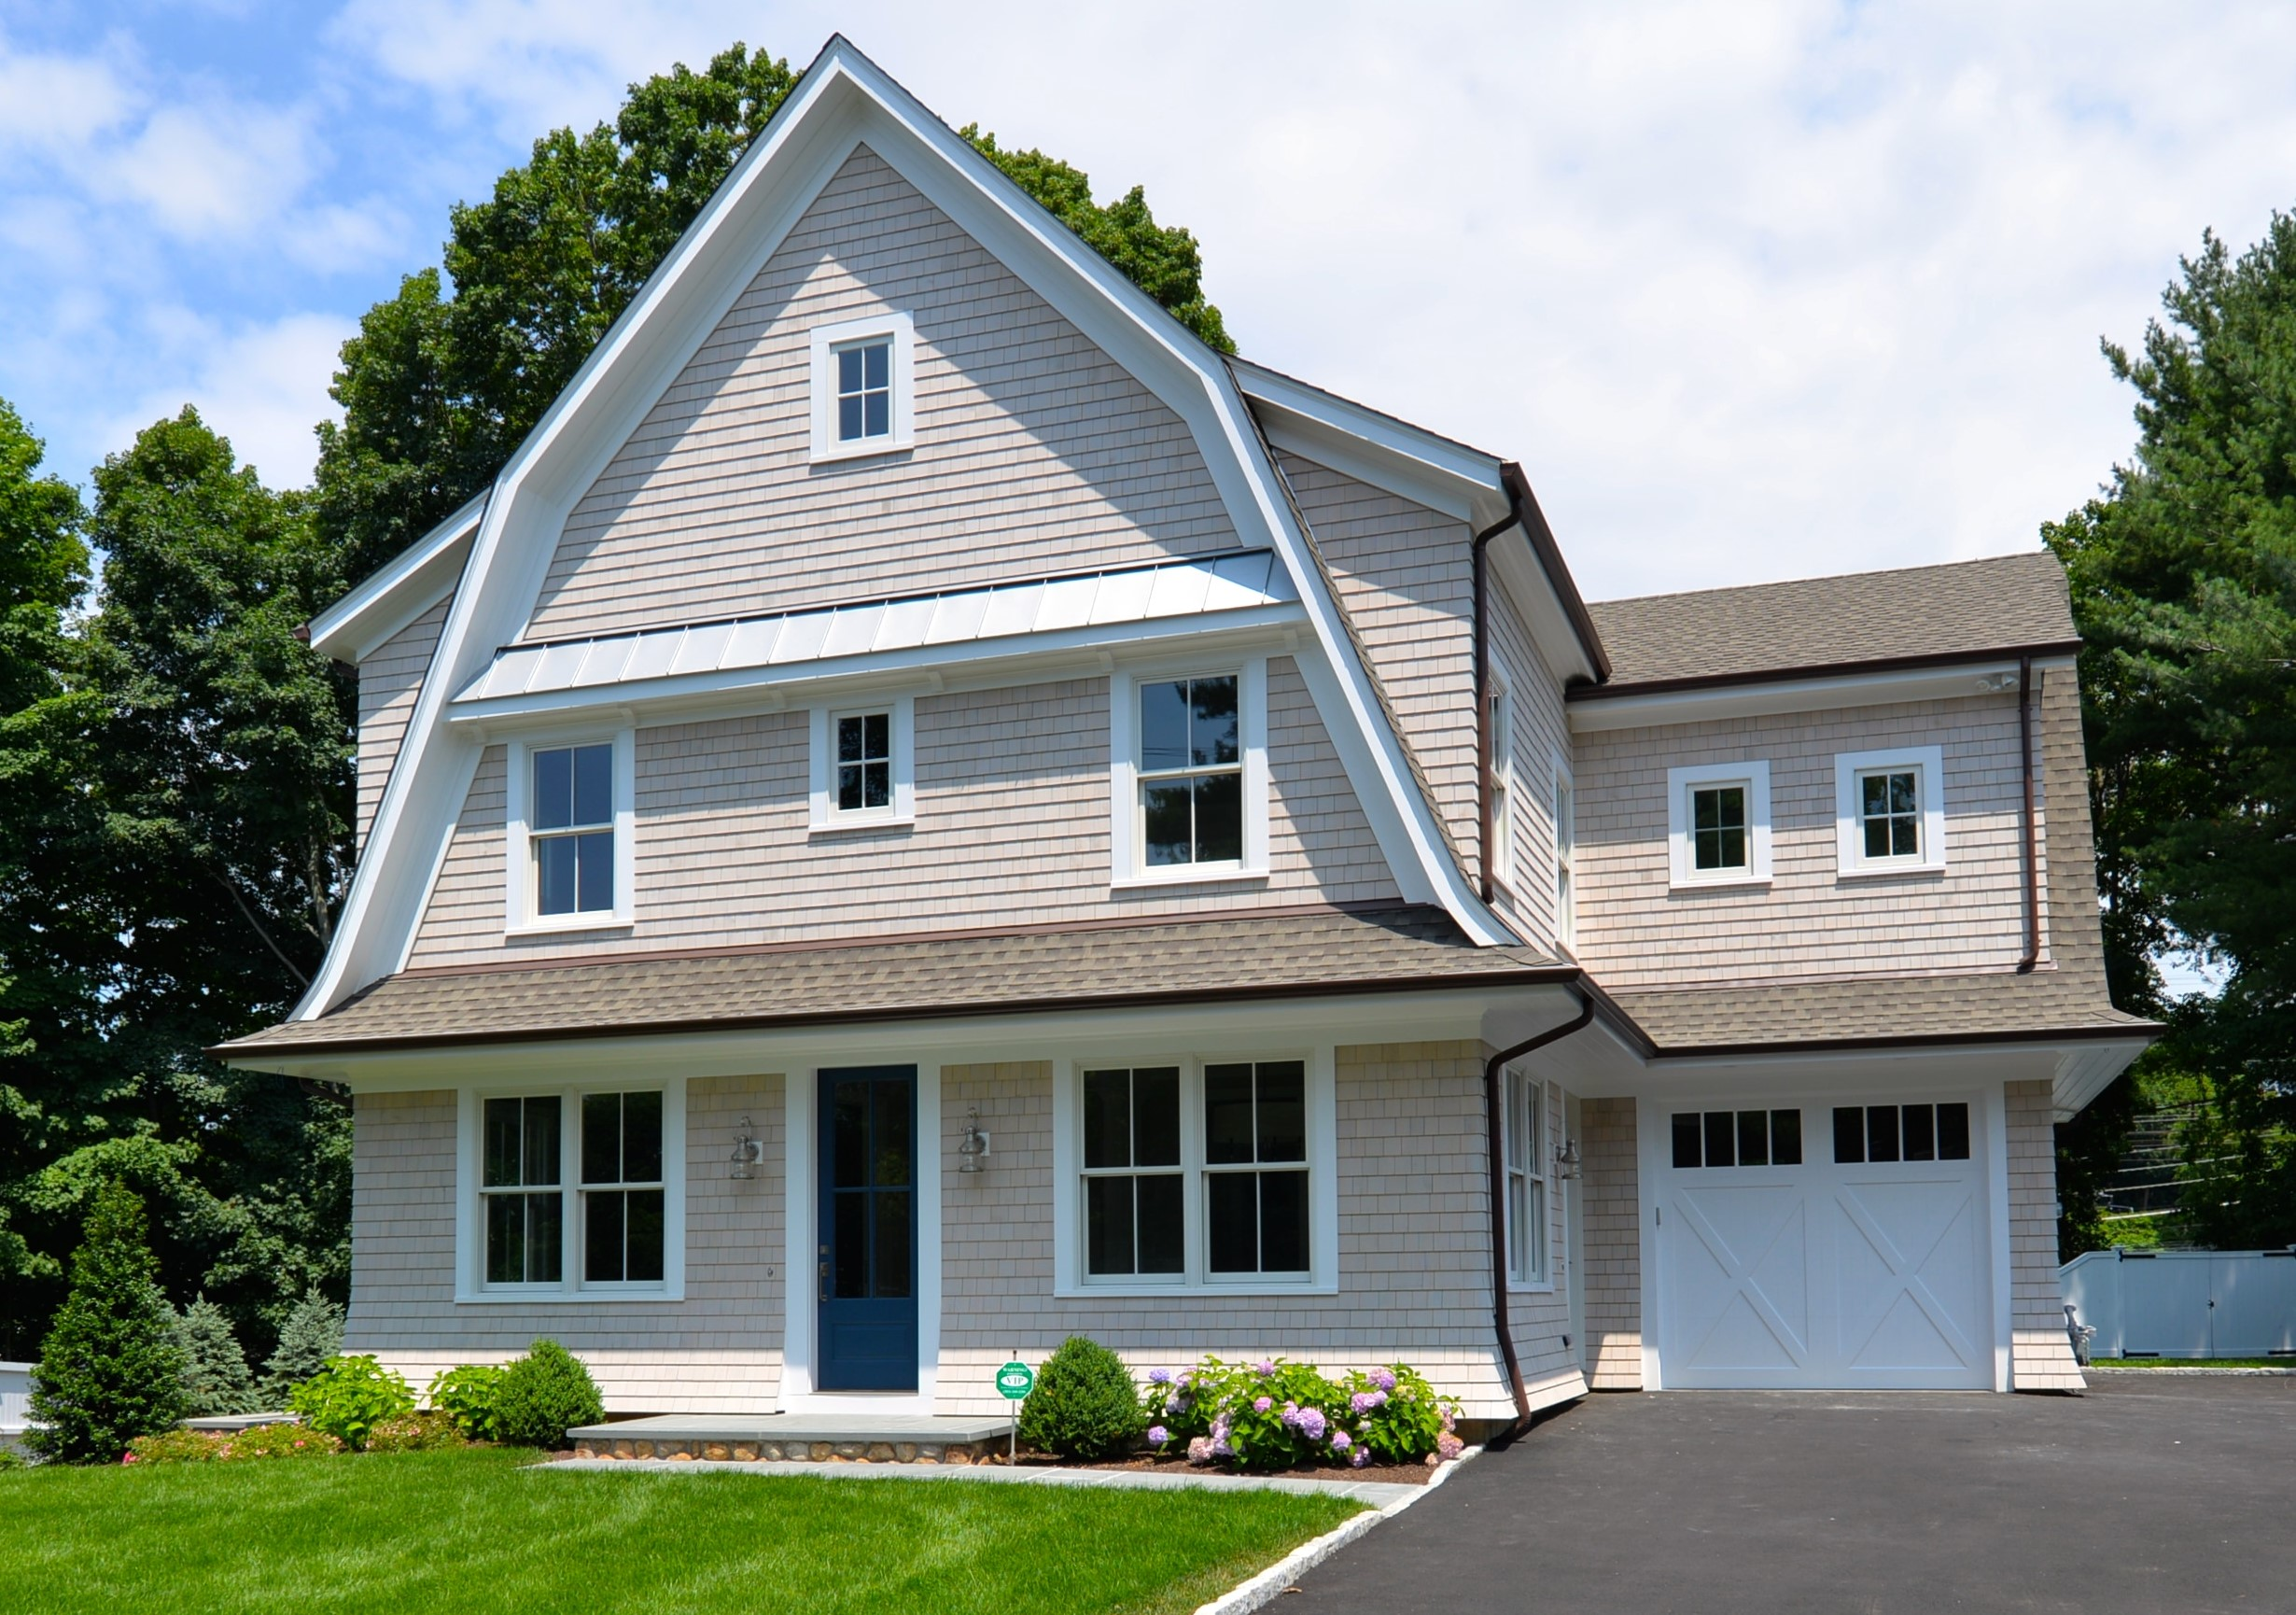 Single Family Home for Sale at New Construction 4 Vani Court Westport, Connecticut, 06880 United States